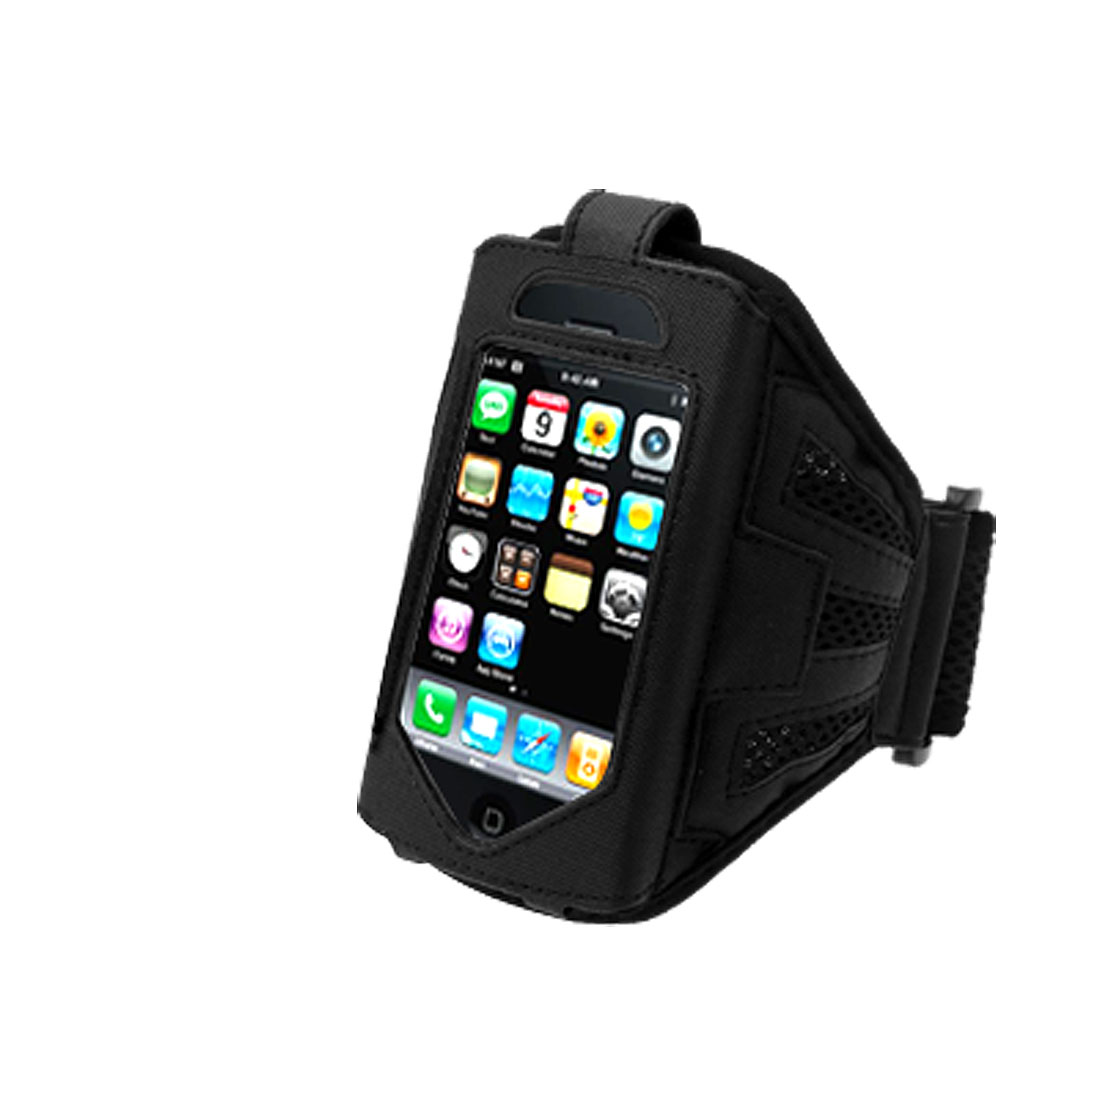 Running Exercise Sport Armband Case Holder with Flap Black for Apple iPhone 3G